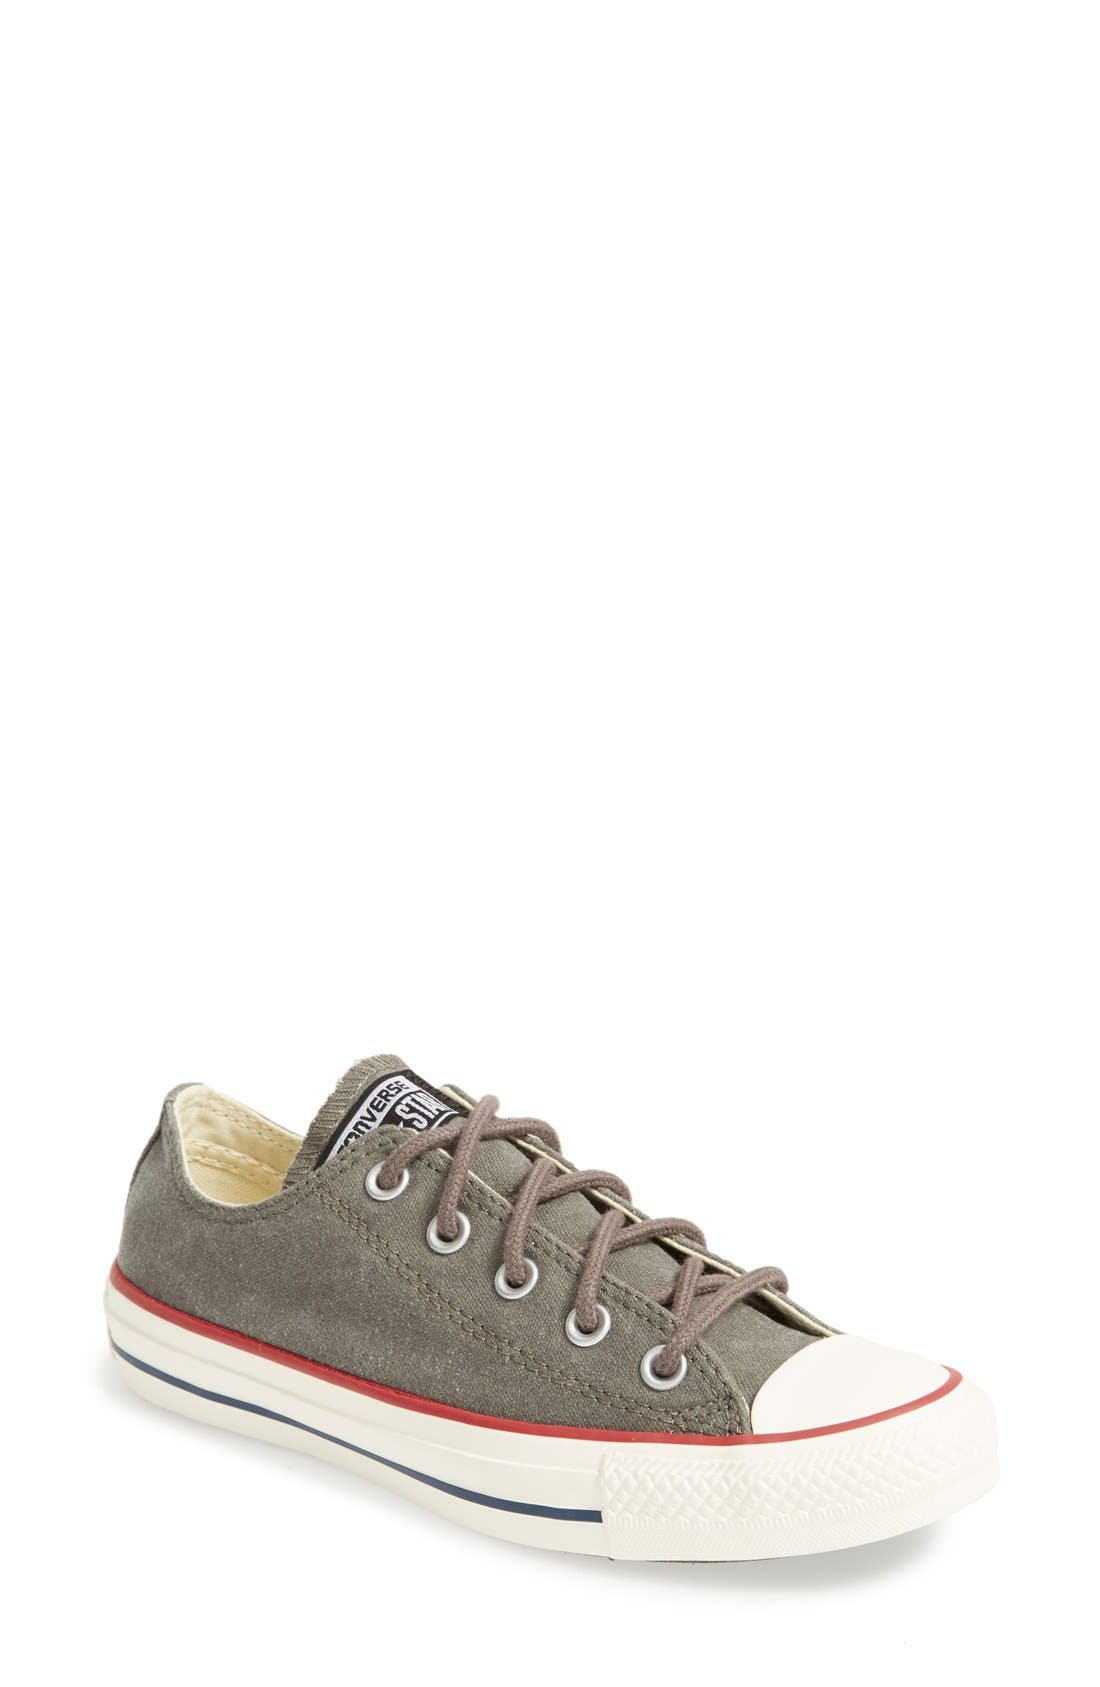 Alternate Image 1 Selected - Converse Chuck Taylor® All Star® 'Ox' Canvas Sneaker (Women)